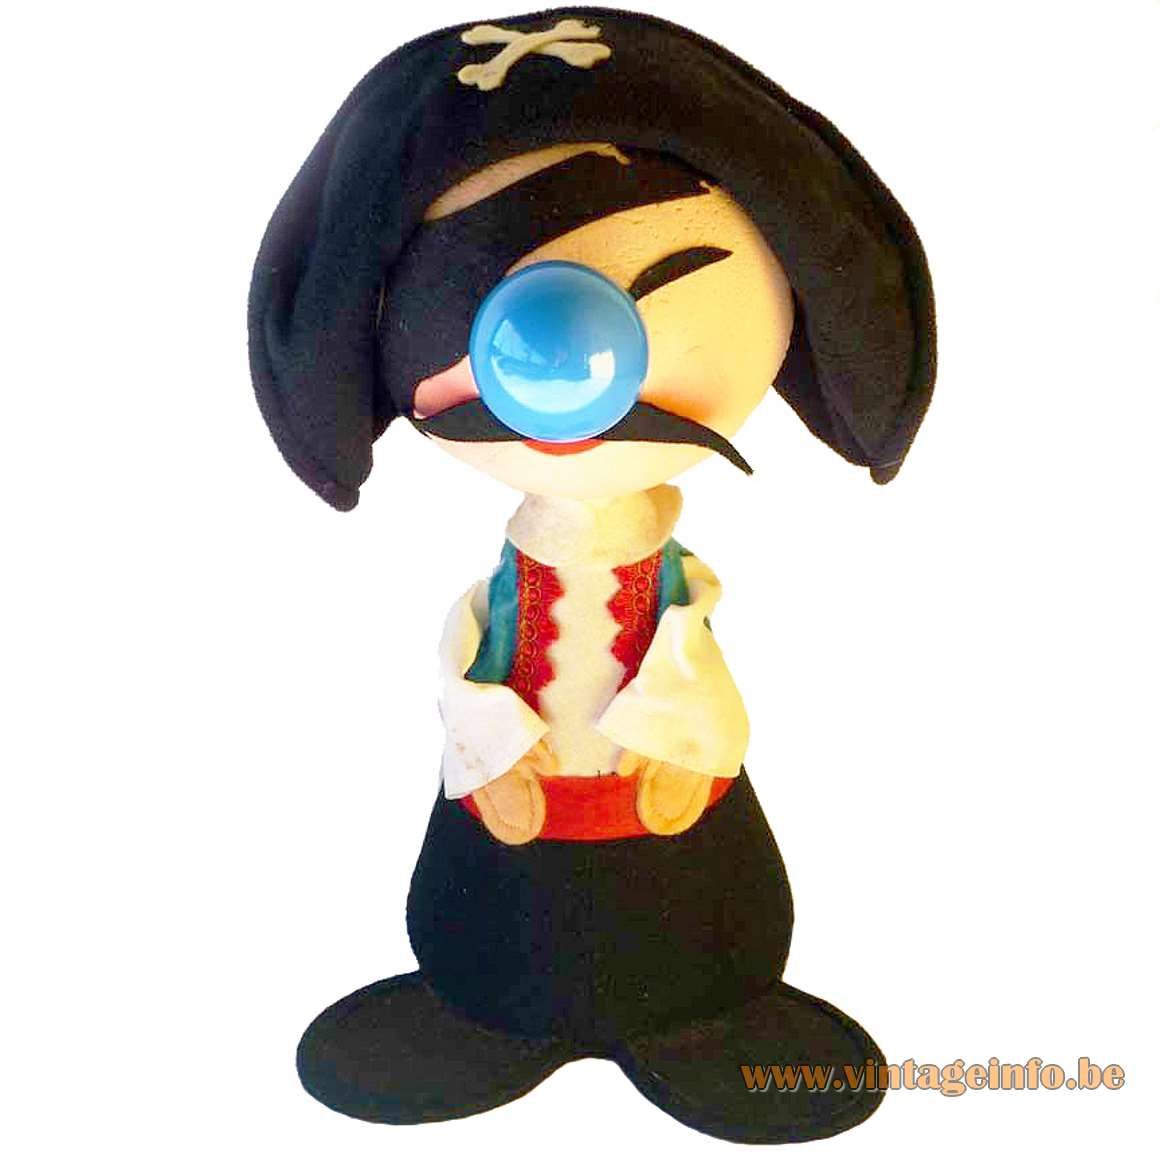 1970s Felt Pirate Table Lamp kids night light fabric bedroom MCM 1960s figurine